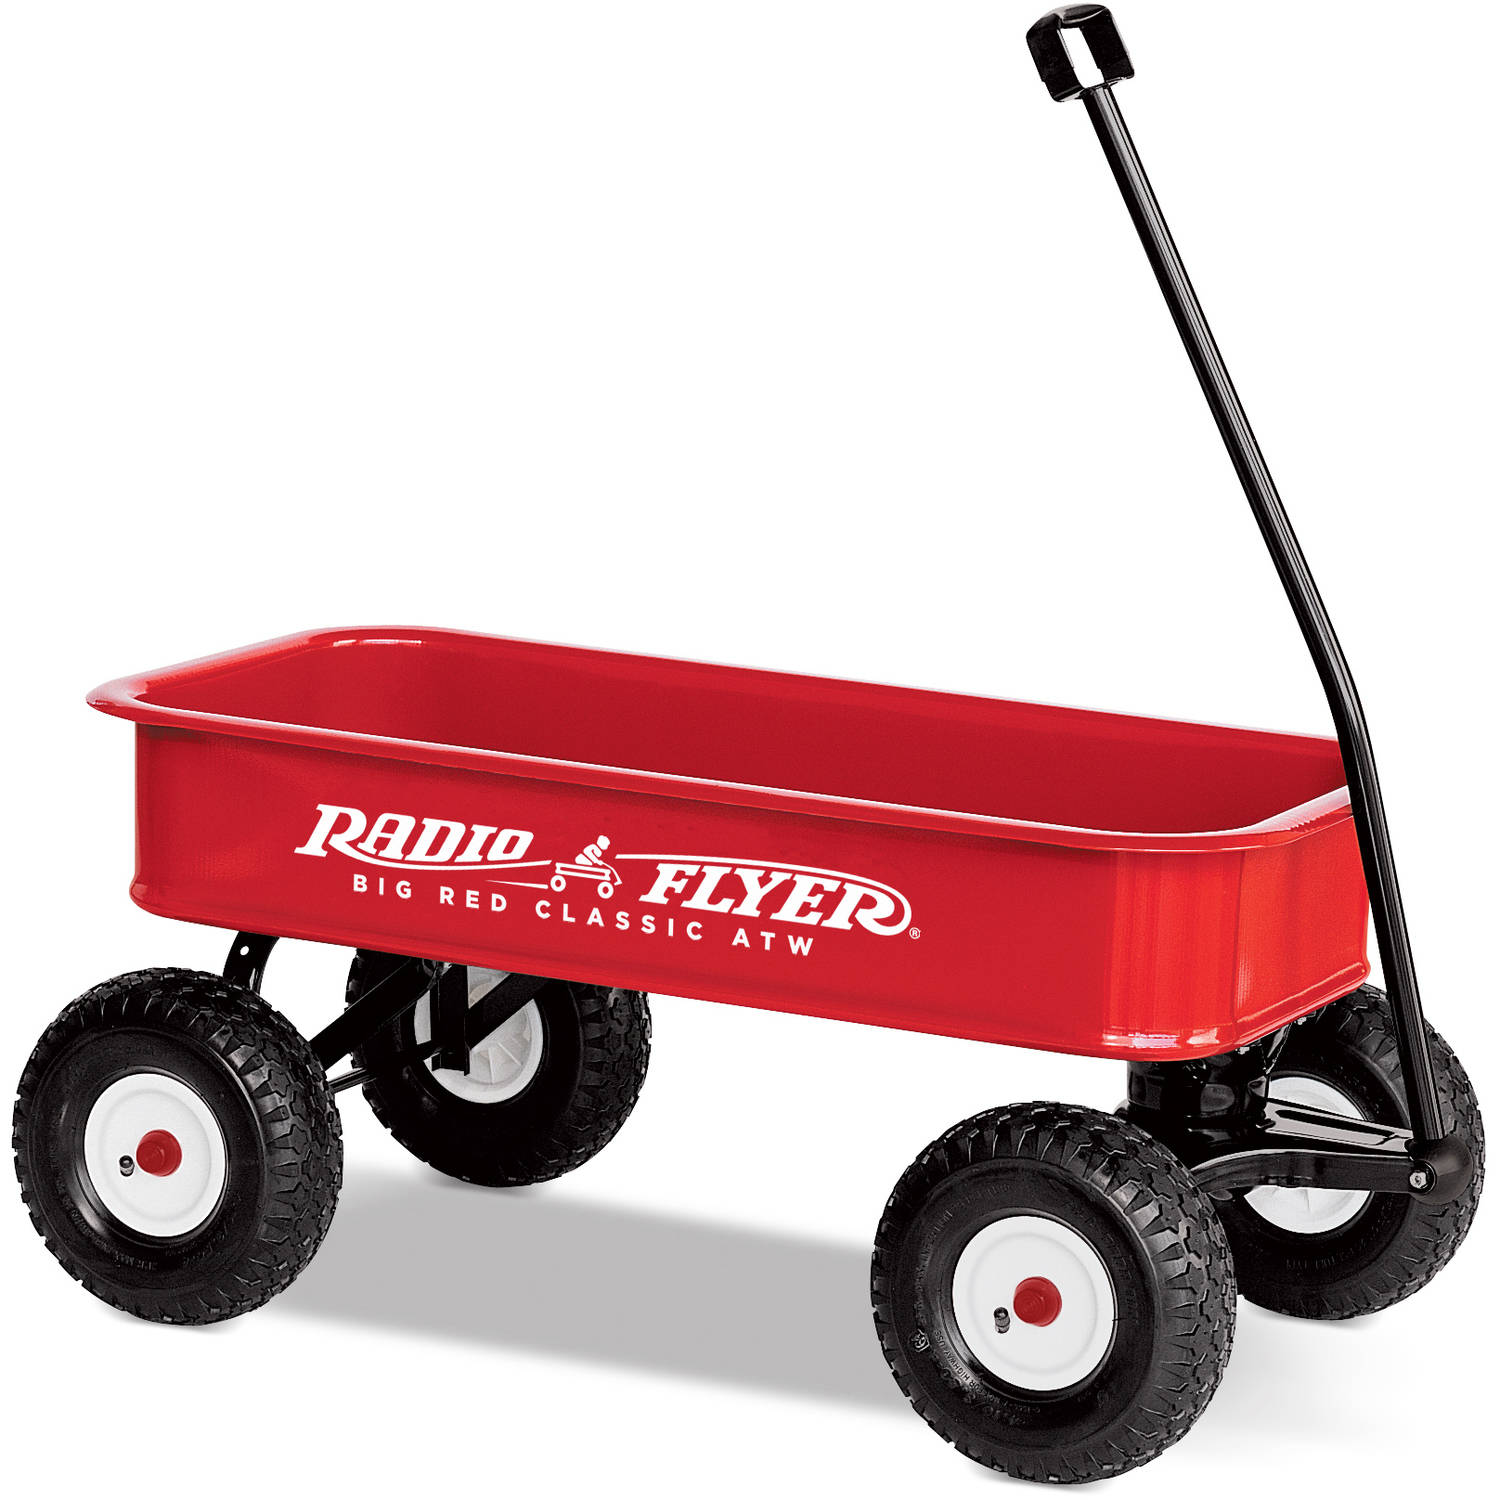 2. When you're a Radio Flyer Birthday club member, you can get complimentary $10 gift cards on your, or your child's, birthday. In addition, you'll receive all sorts of birthday perks like free games, decorations and invitations. 3. Radio Flyer partners with a non-profit organization that plants a .